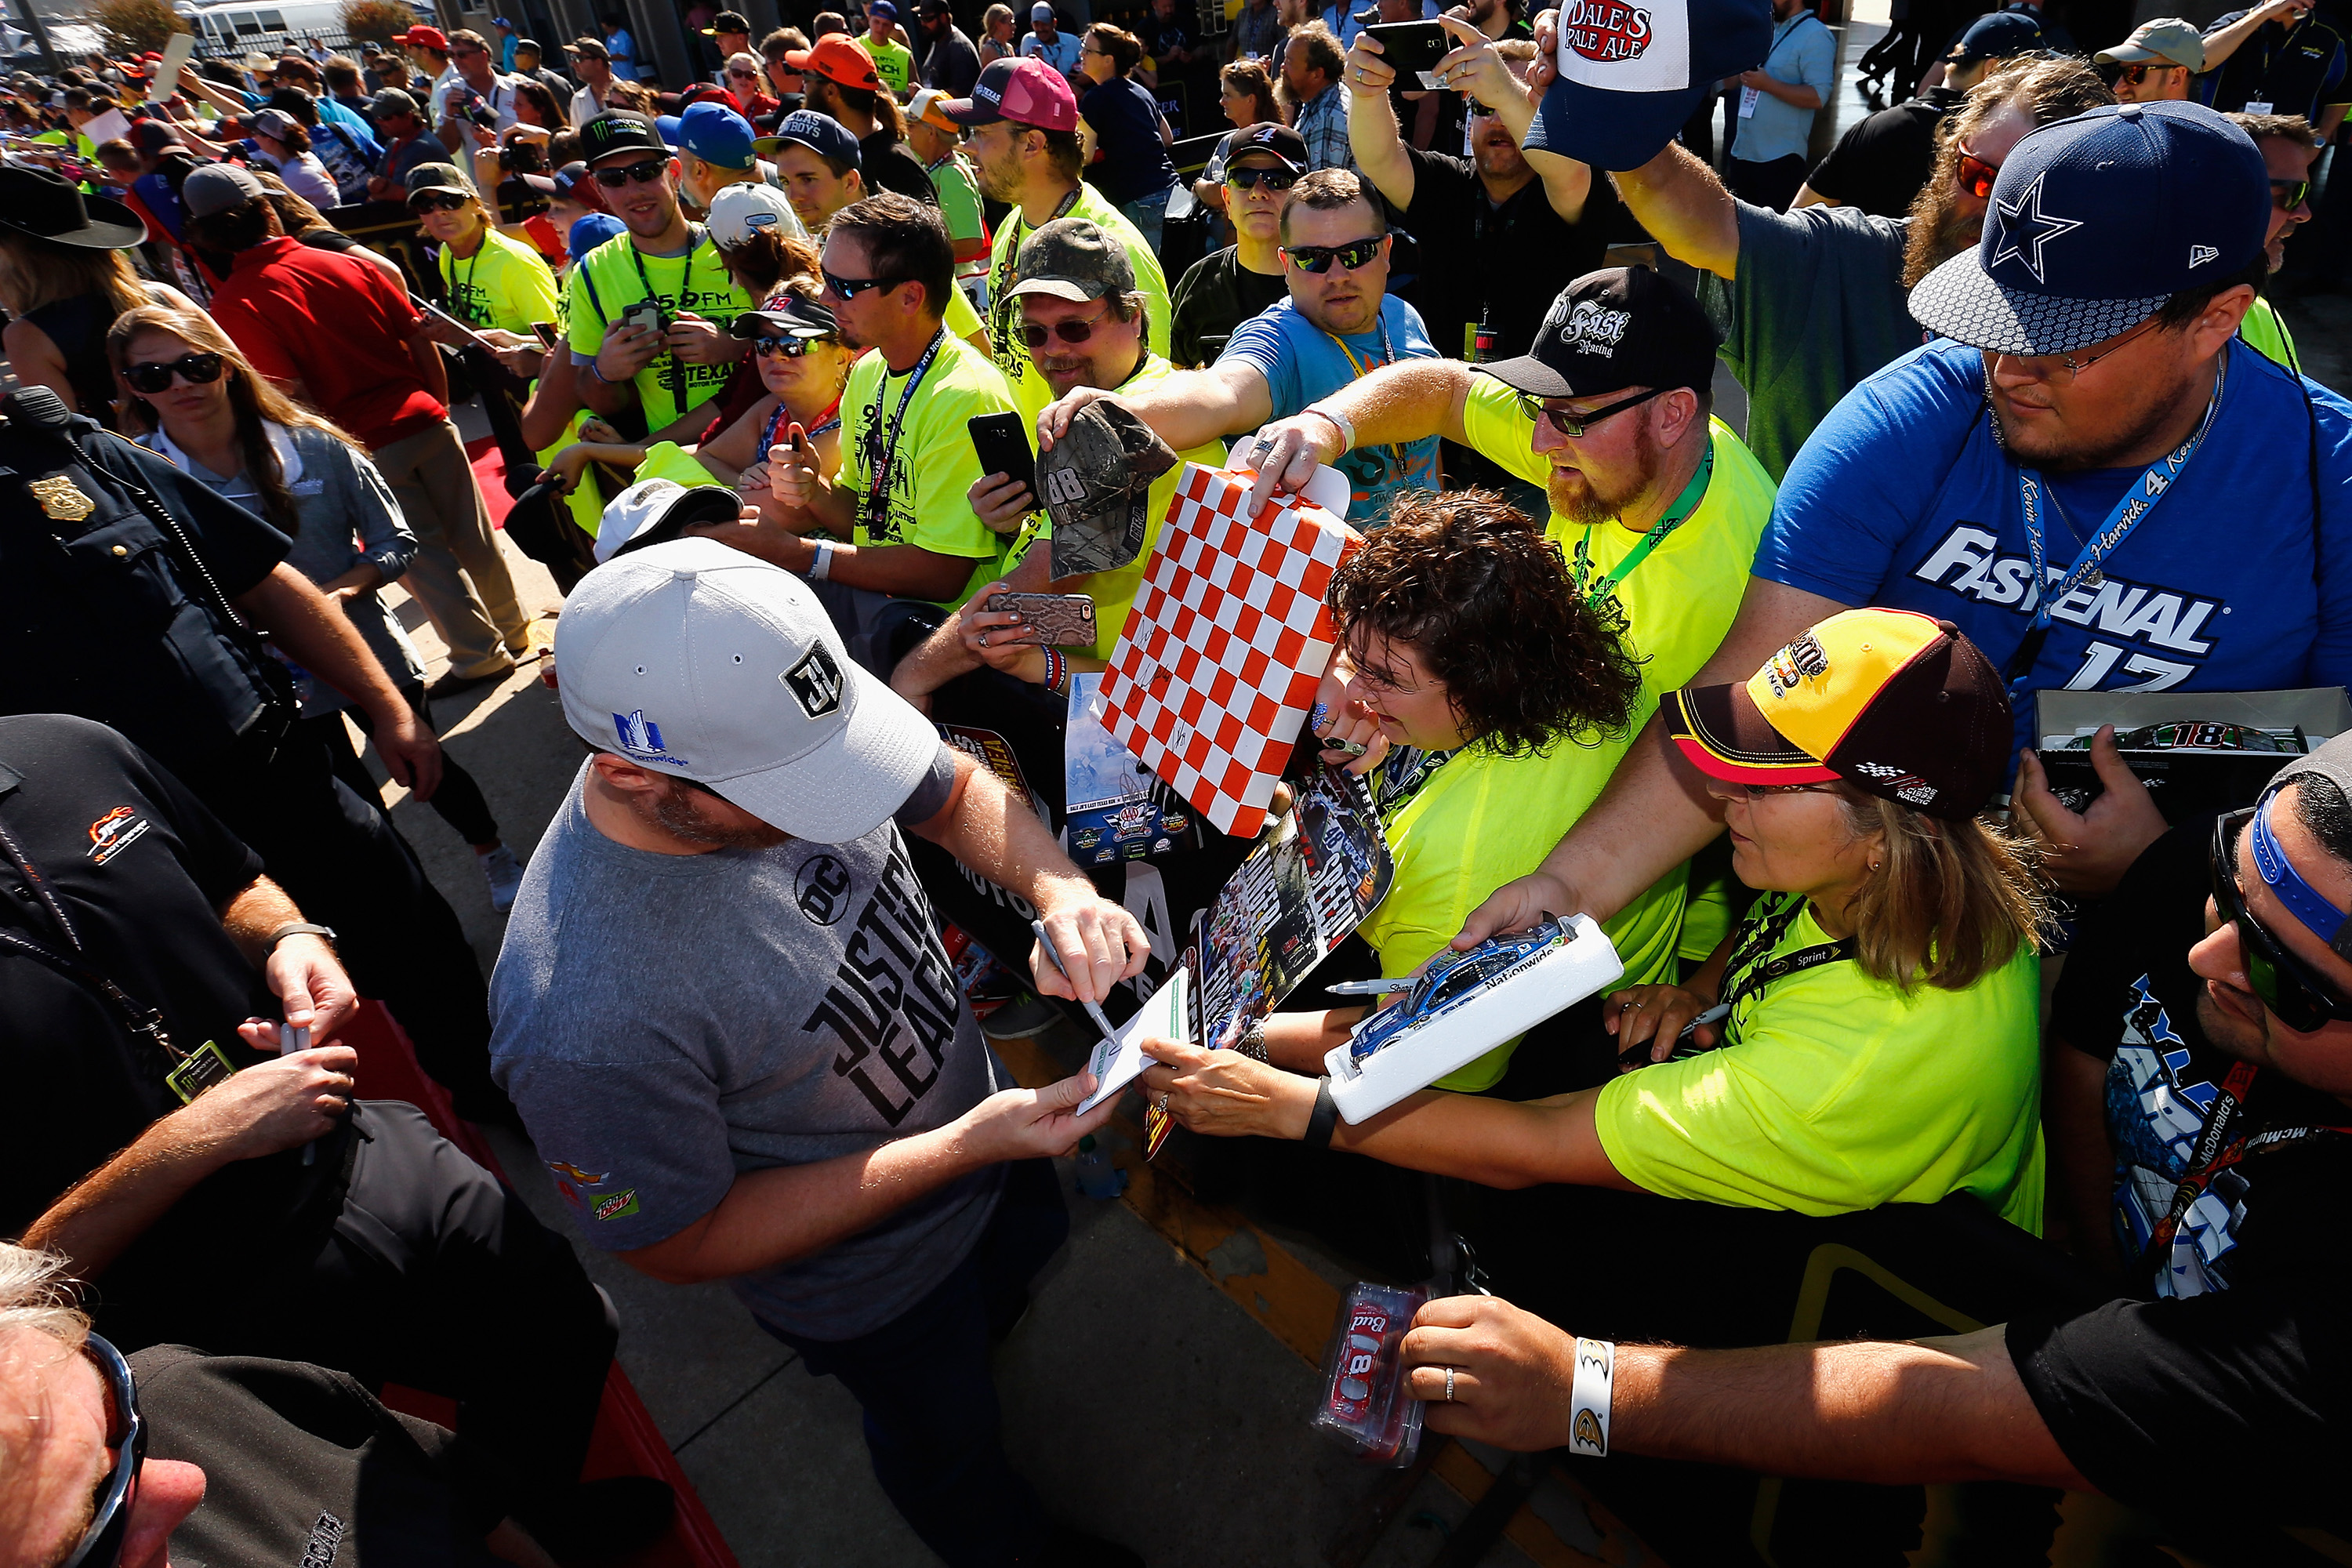 Dale Earnhardt Jr signs autographs